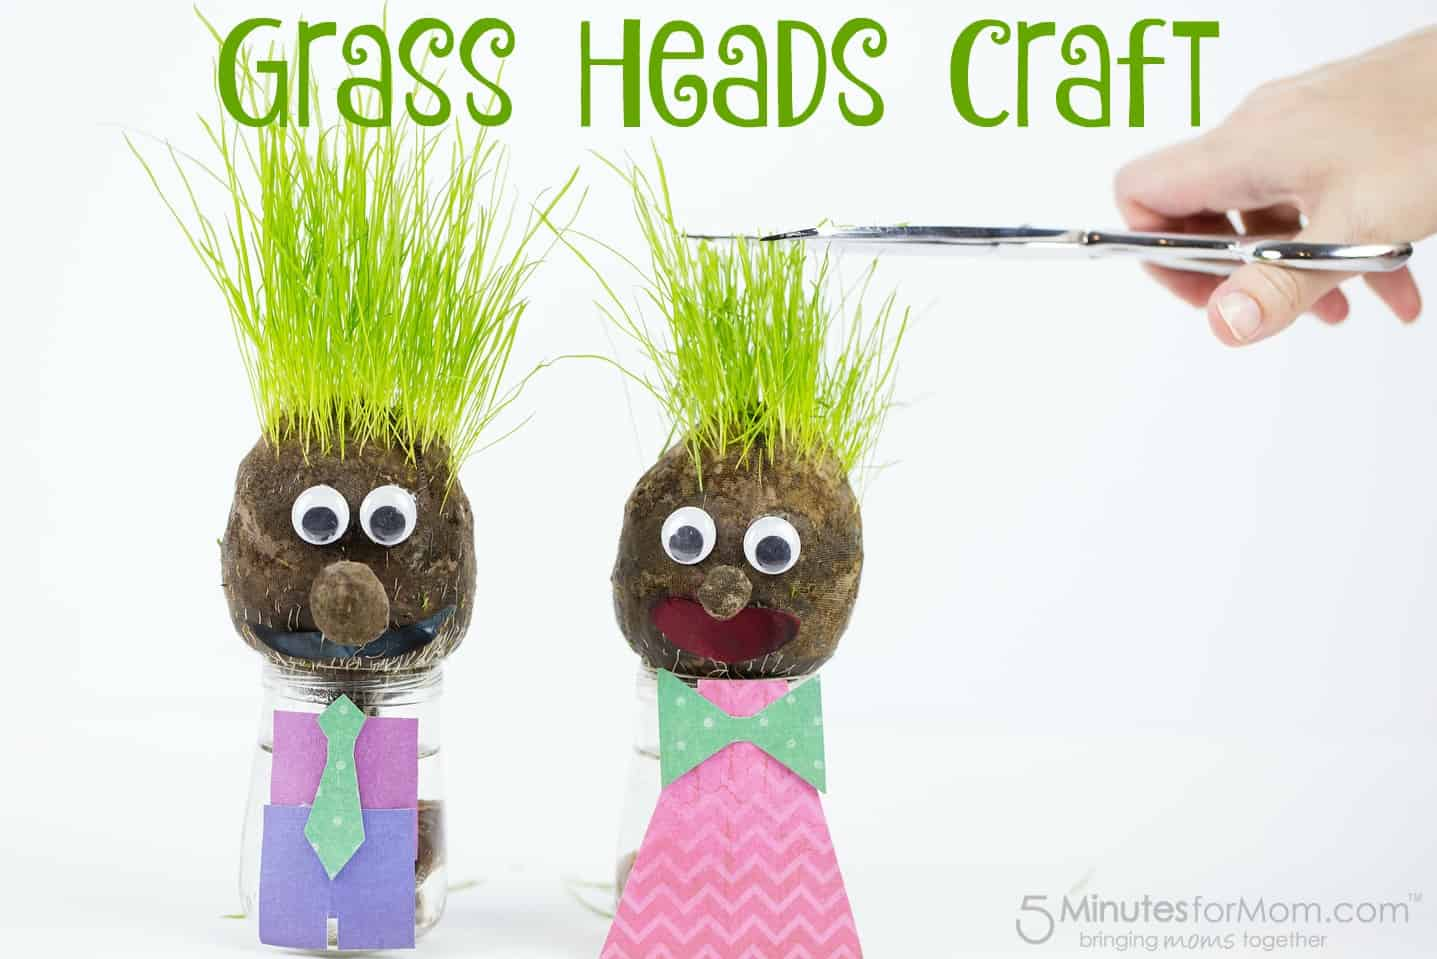 Grass Heads Craft for Kids